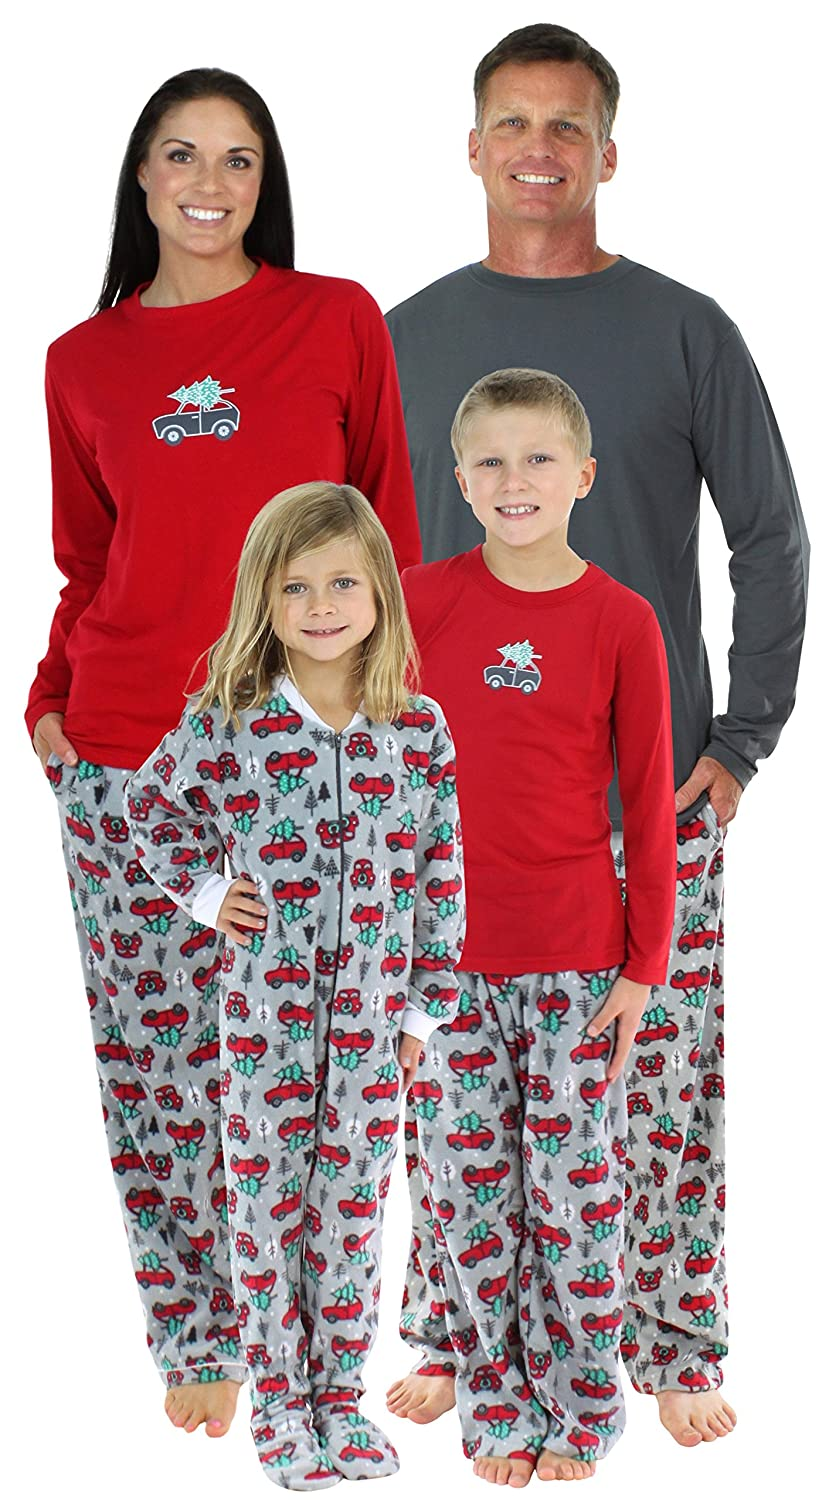 SleepytimePjs Family Matching Holiday Fleece Pajamas PJs Sets for The Family a8c15a3bc